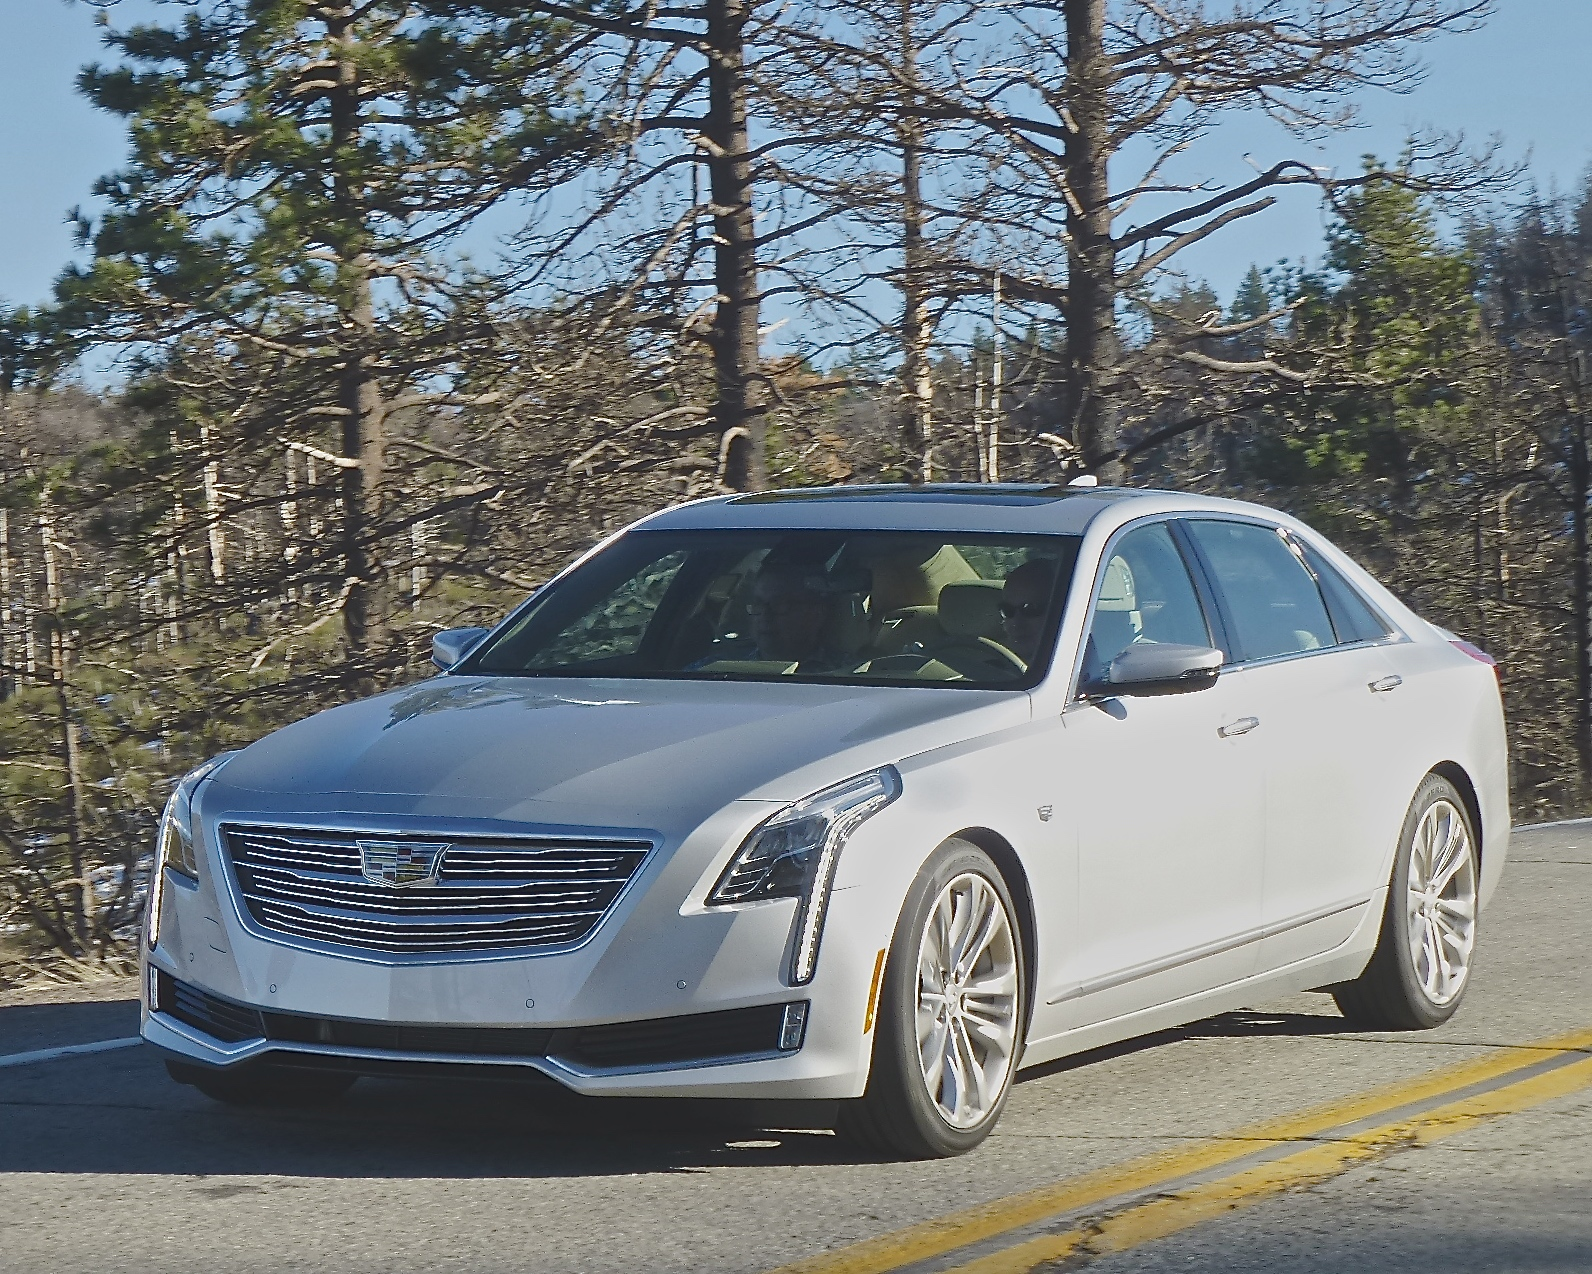 Unique Combination Of Steel And Aluminum Make The CT6 Lighter Than S Class